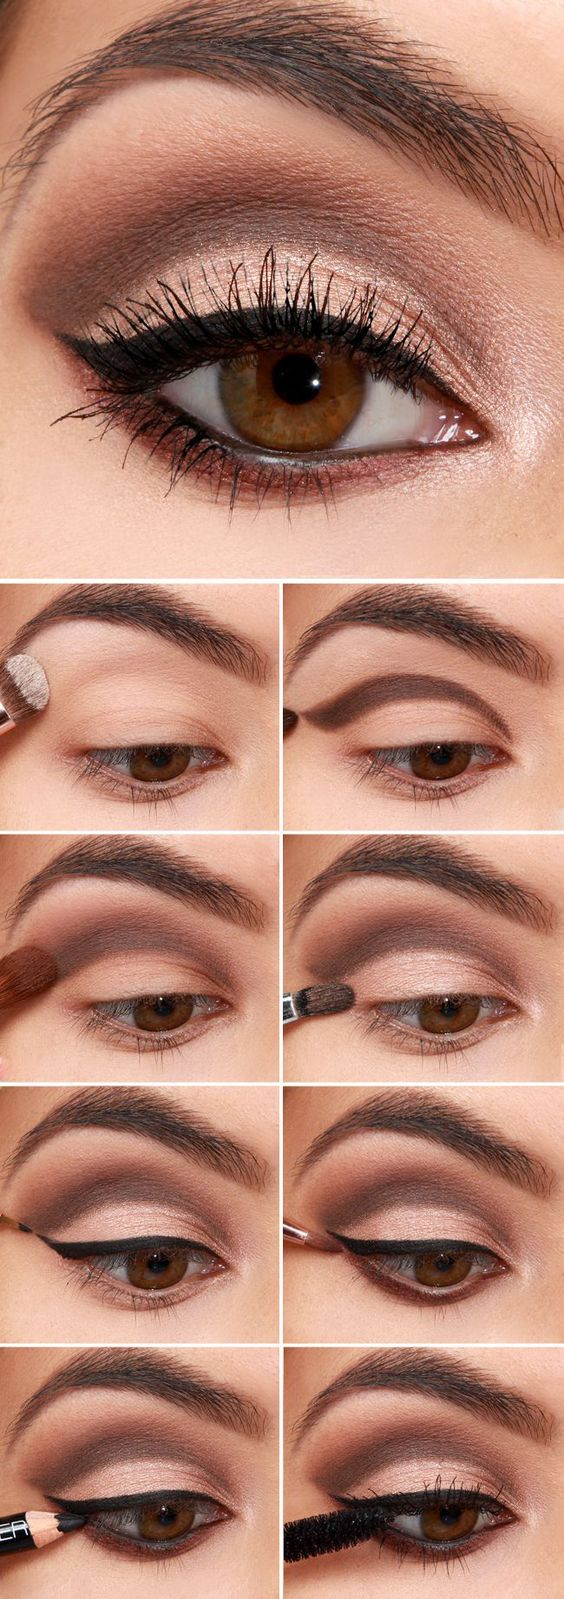 32 easy step by step eyeshadow tutorials for beginners